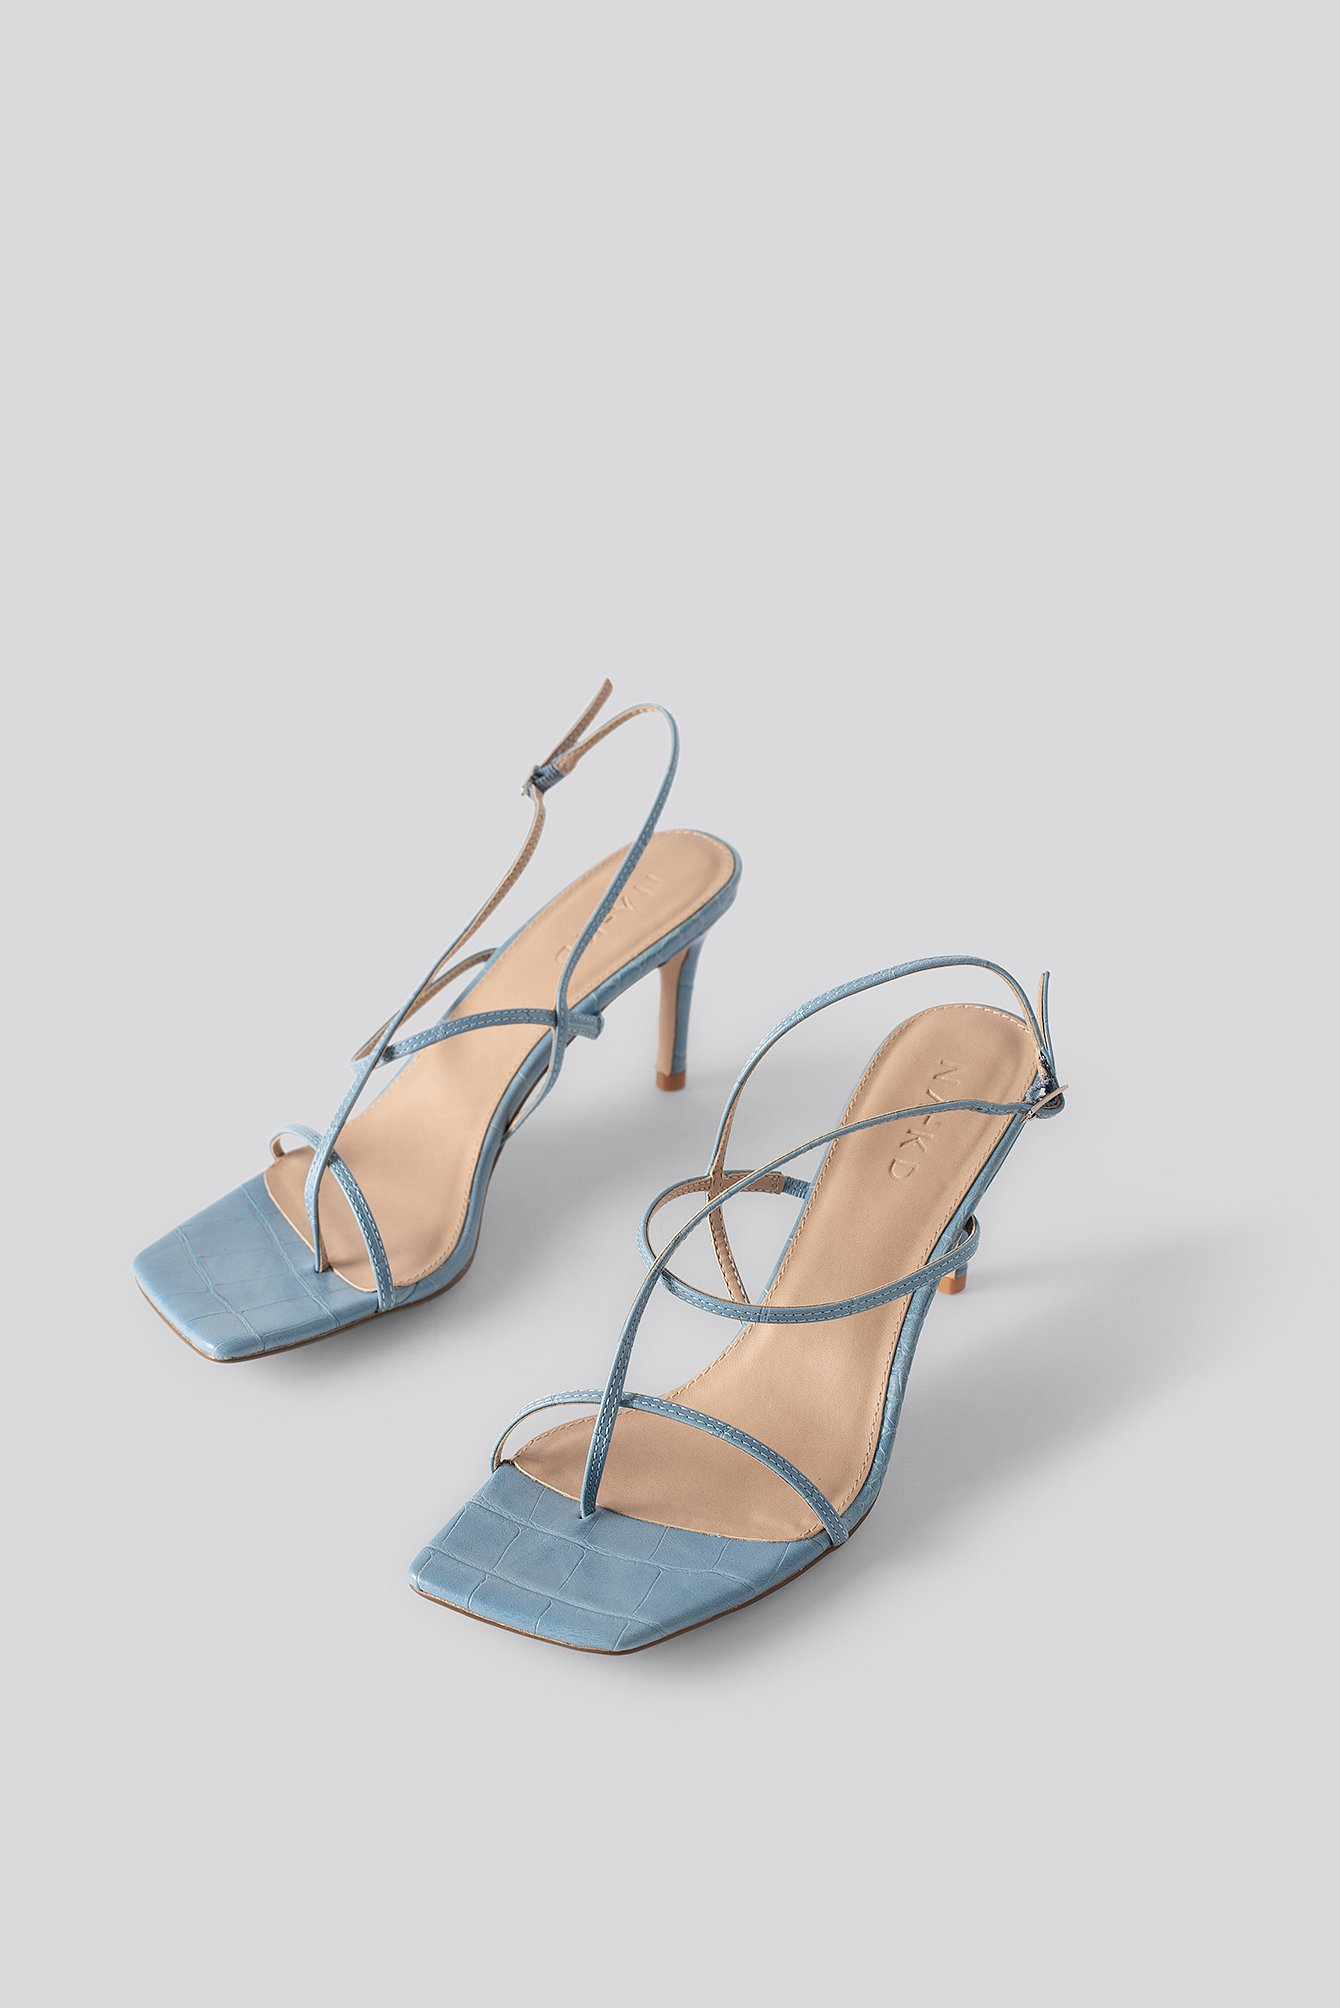 na-kd shoes -  Strappy Stiletto Sandals - Blue